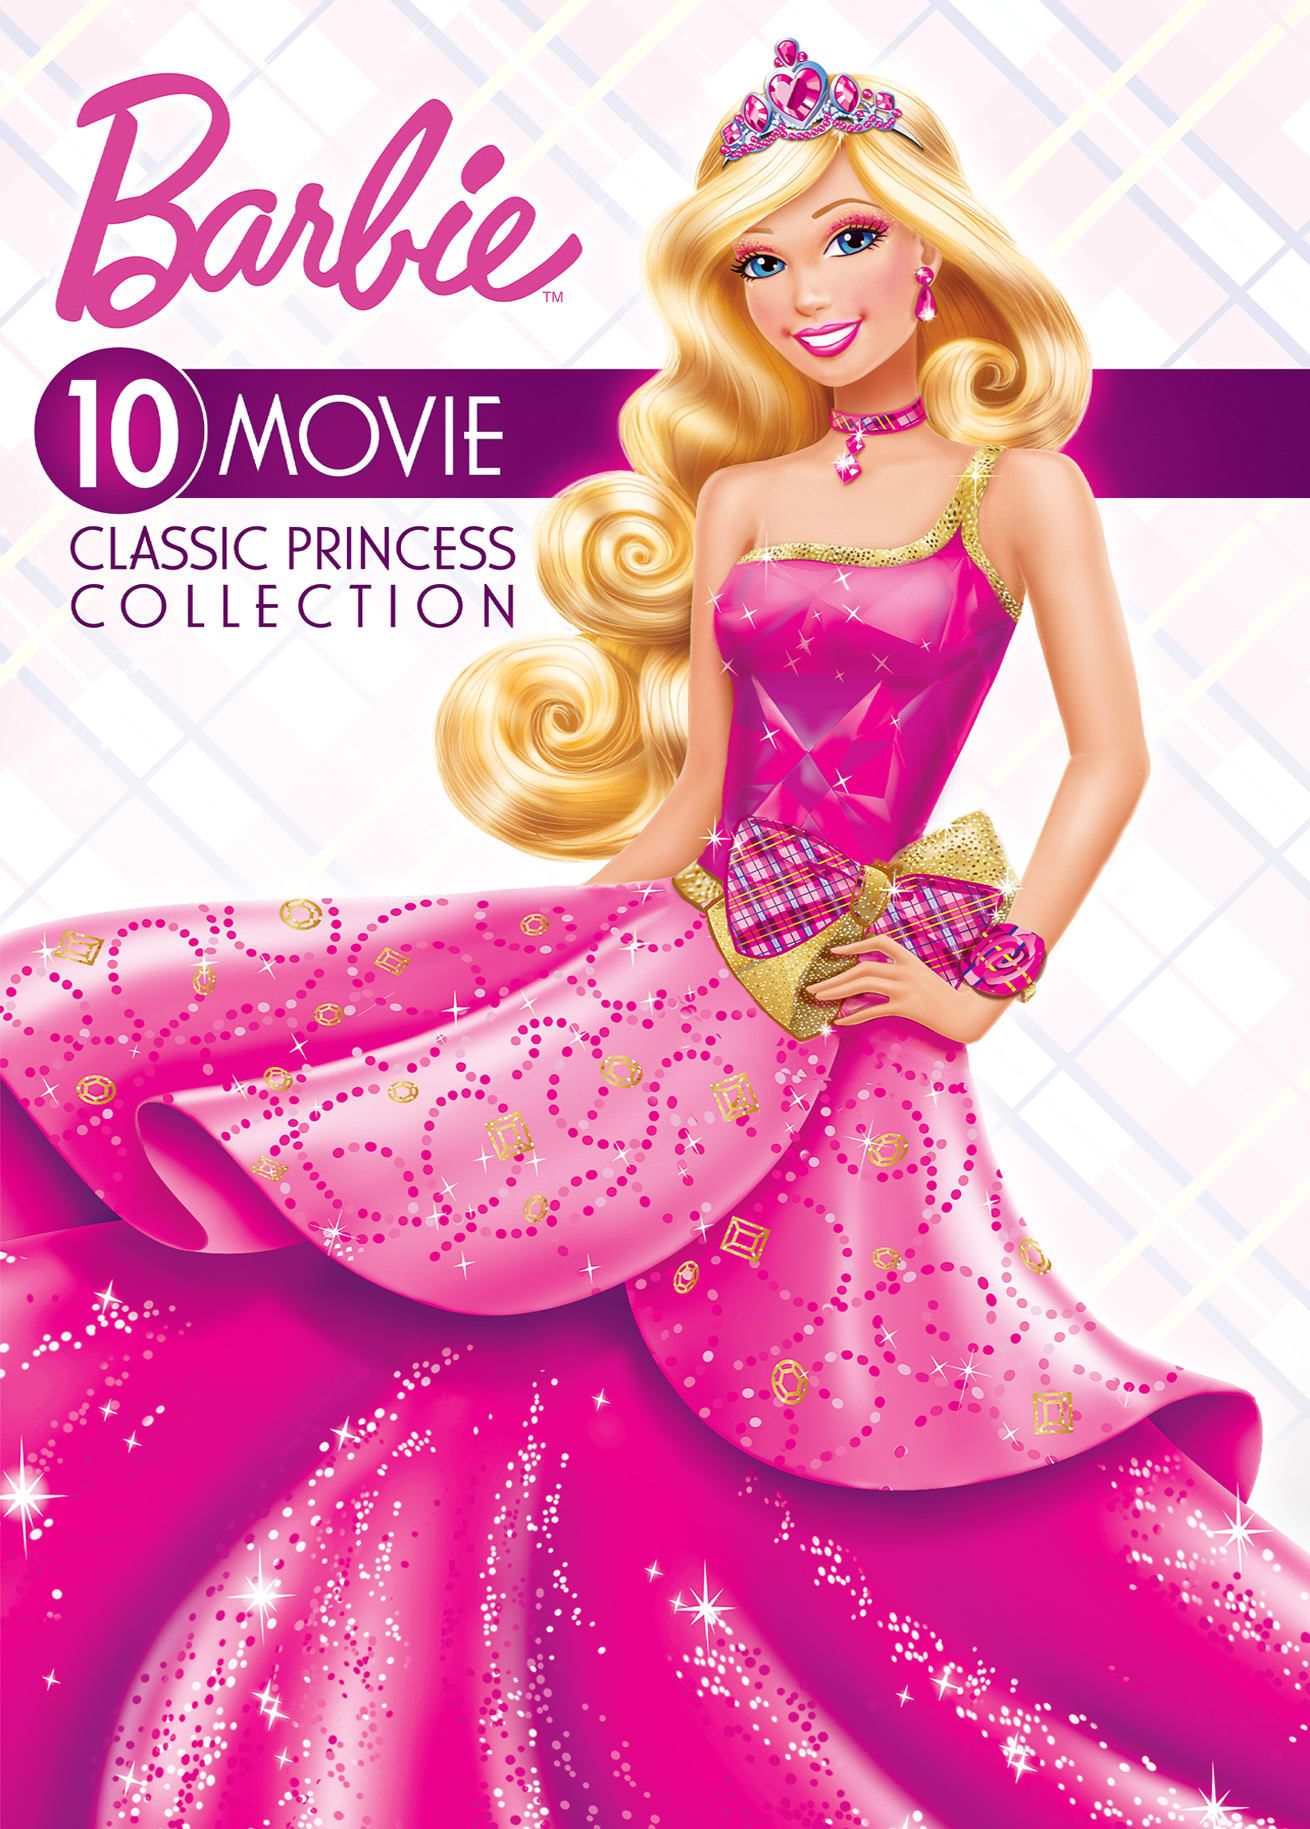 Barbie: 10-movie Classic Princess Collection (Box Set) [DVD]